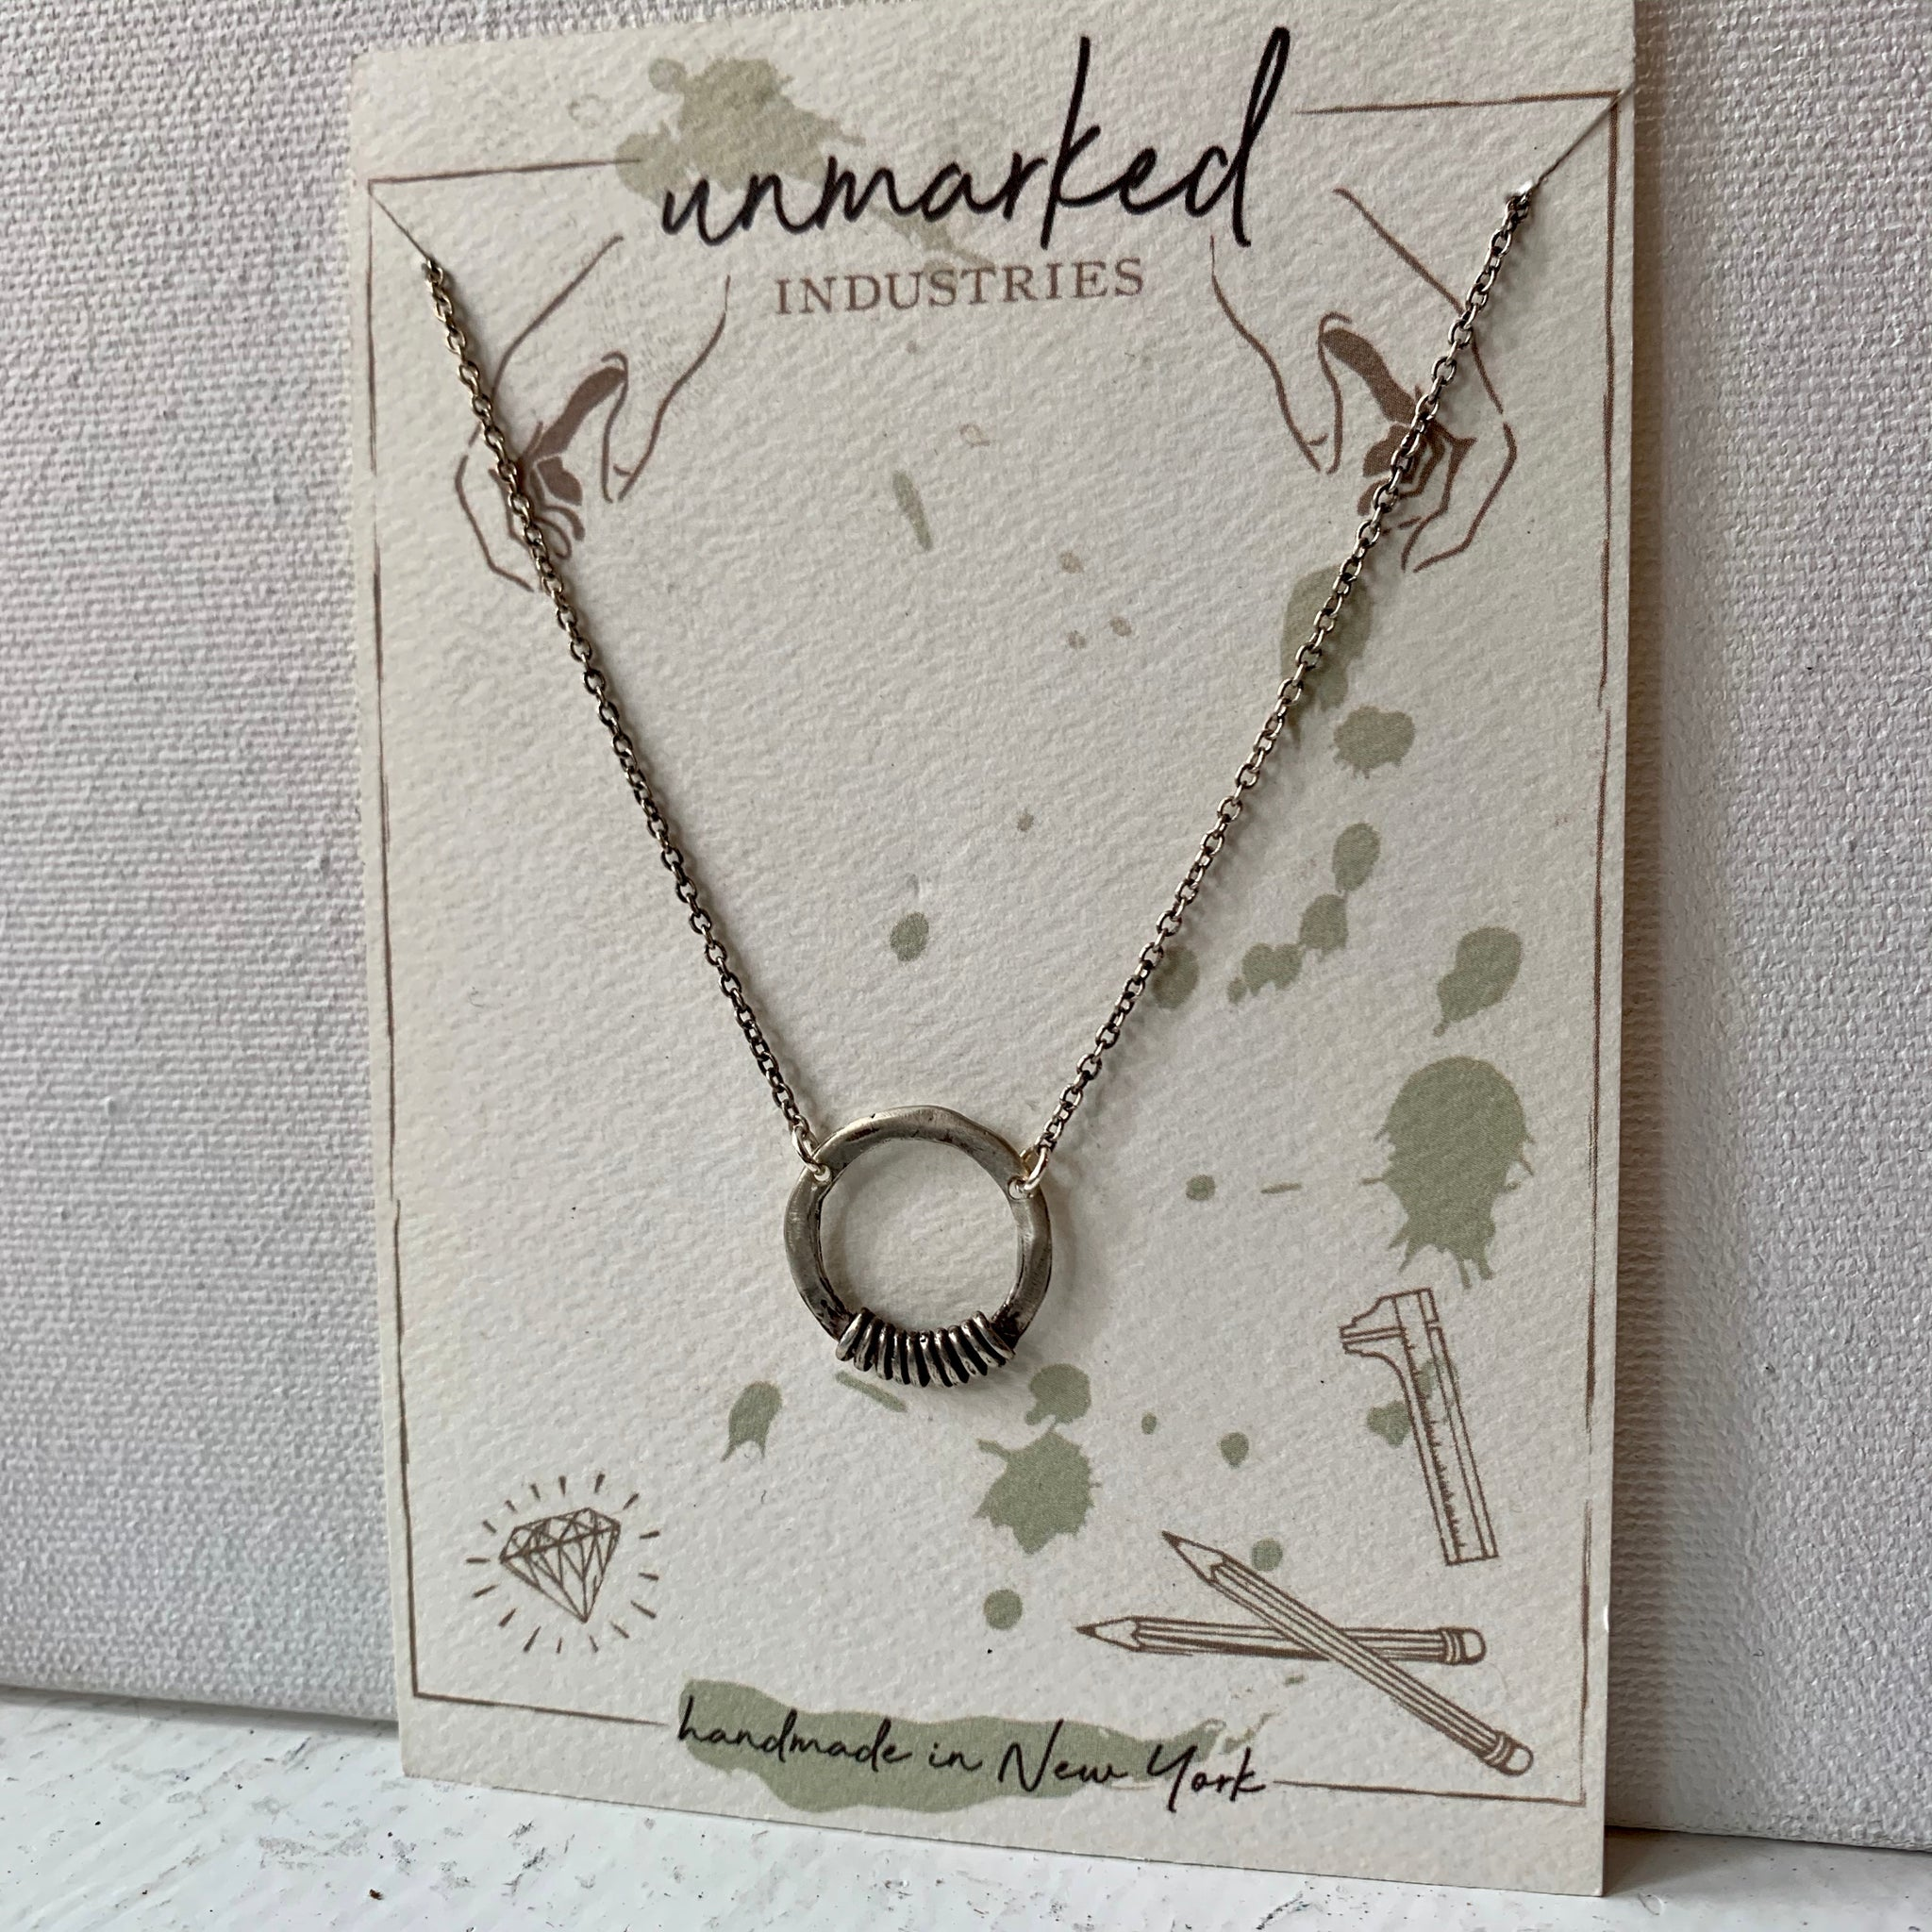 Unmarked Industries necklace